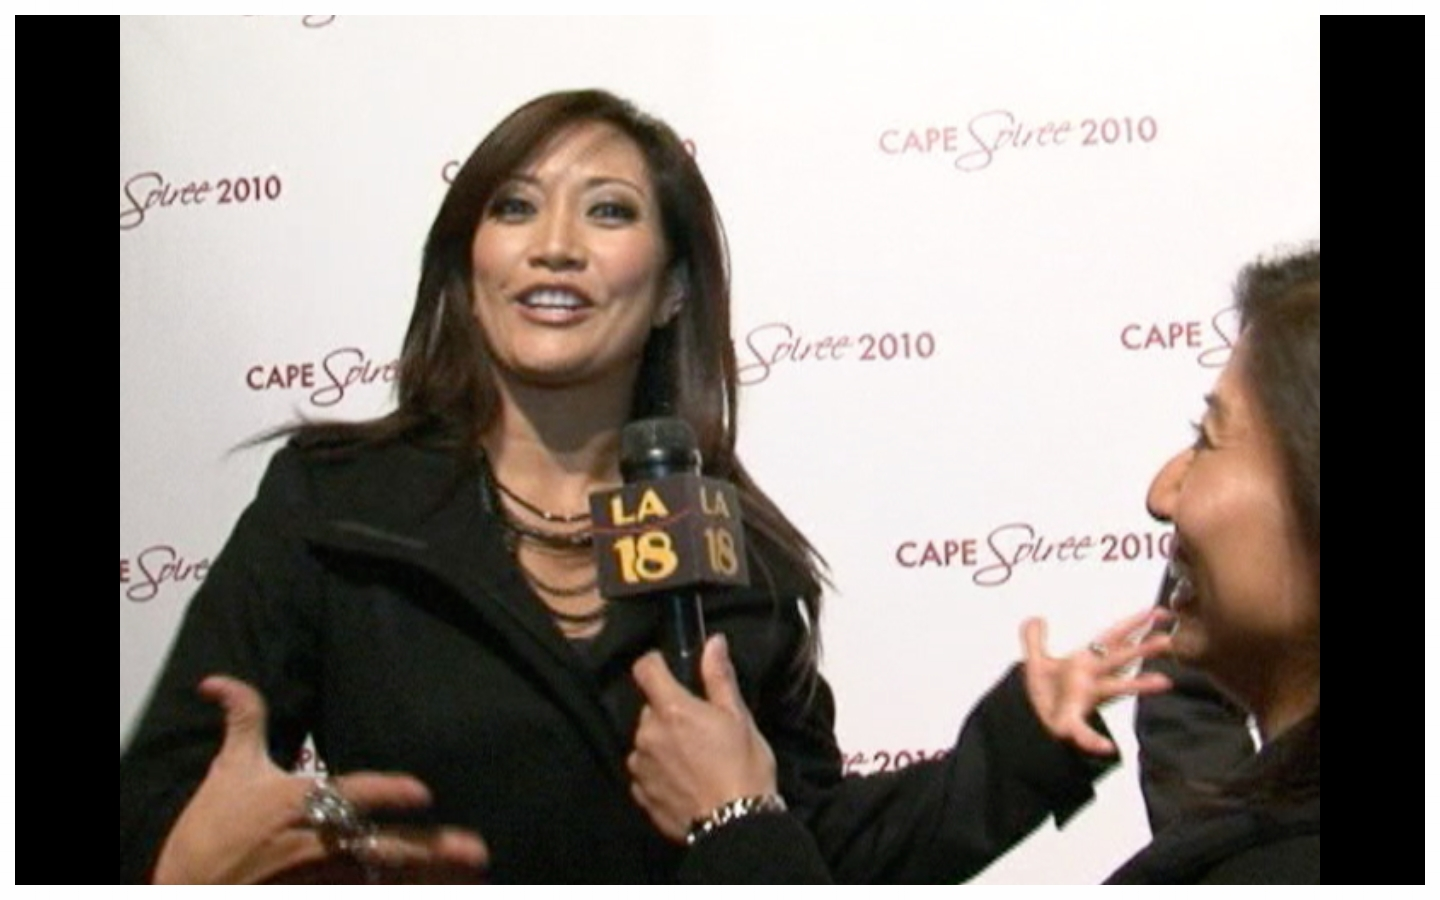 w/ Carrie Ann Inaba